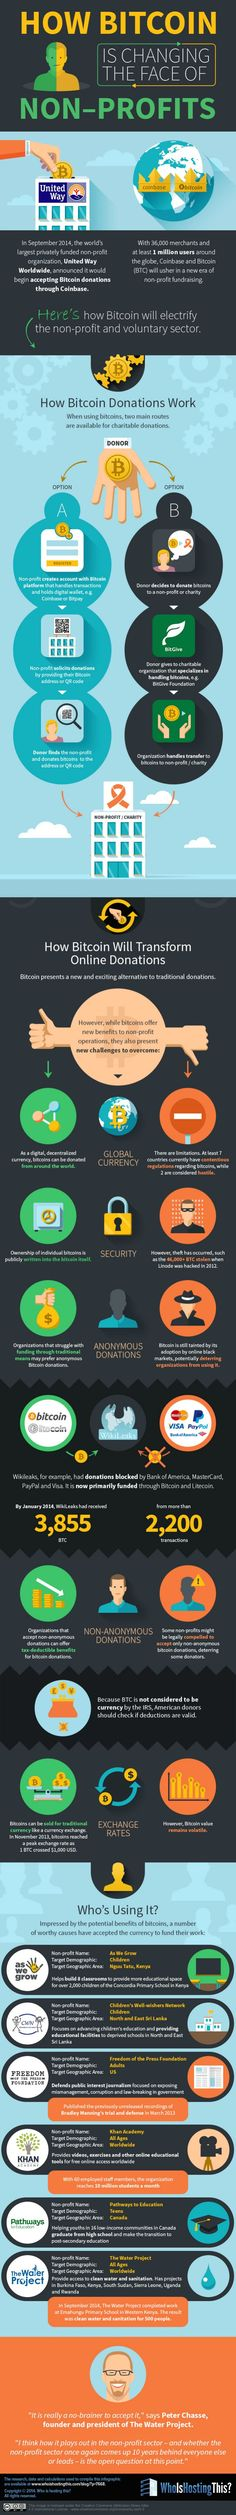 How Bitcoin is Changing the Face of Non-Profits #infographic #Bitcoin #Nonprofits